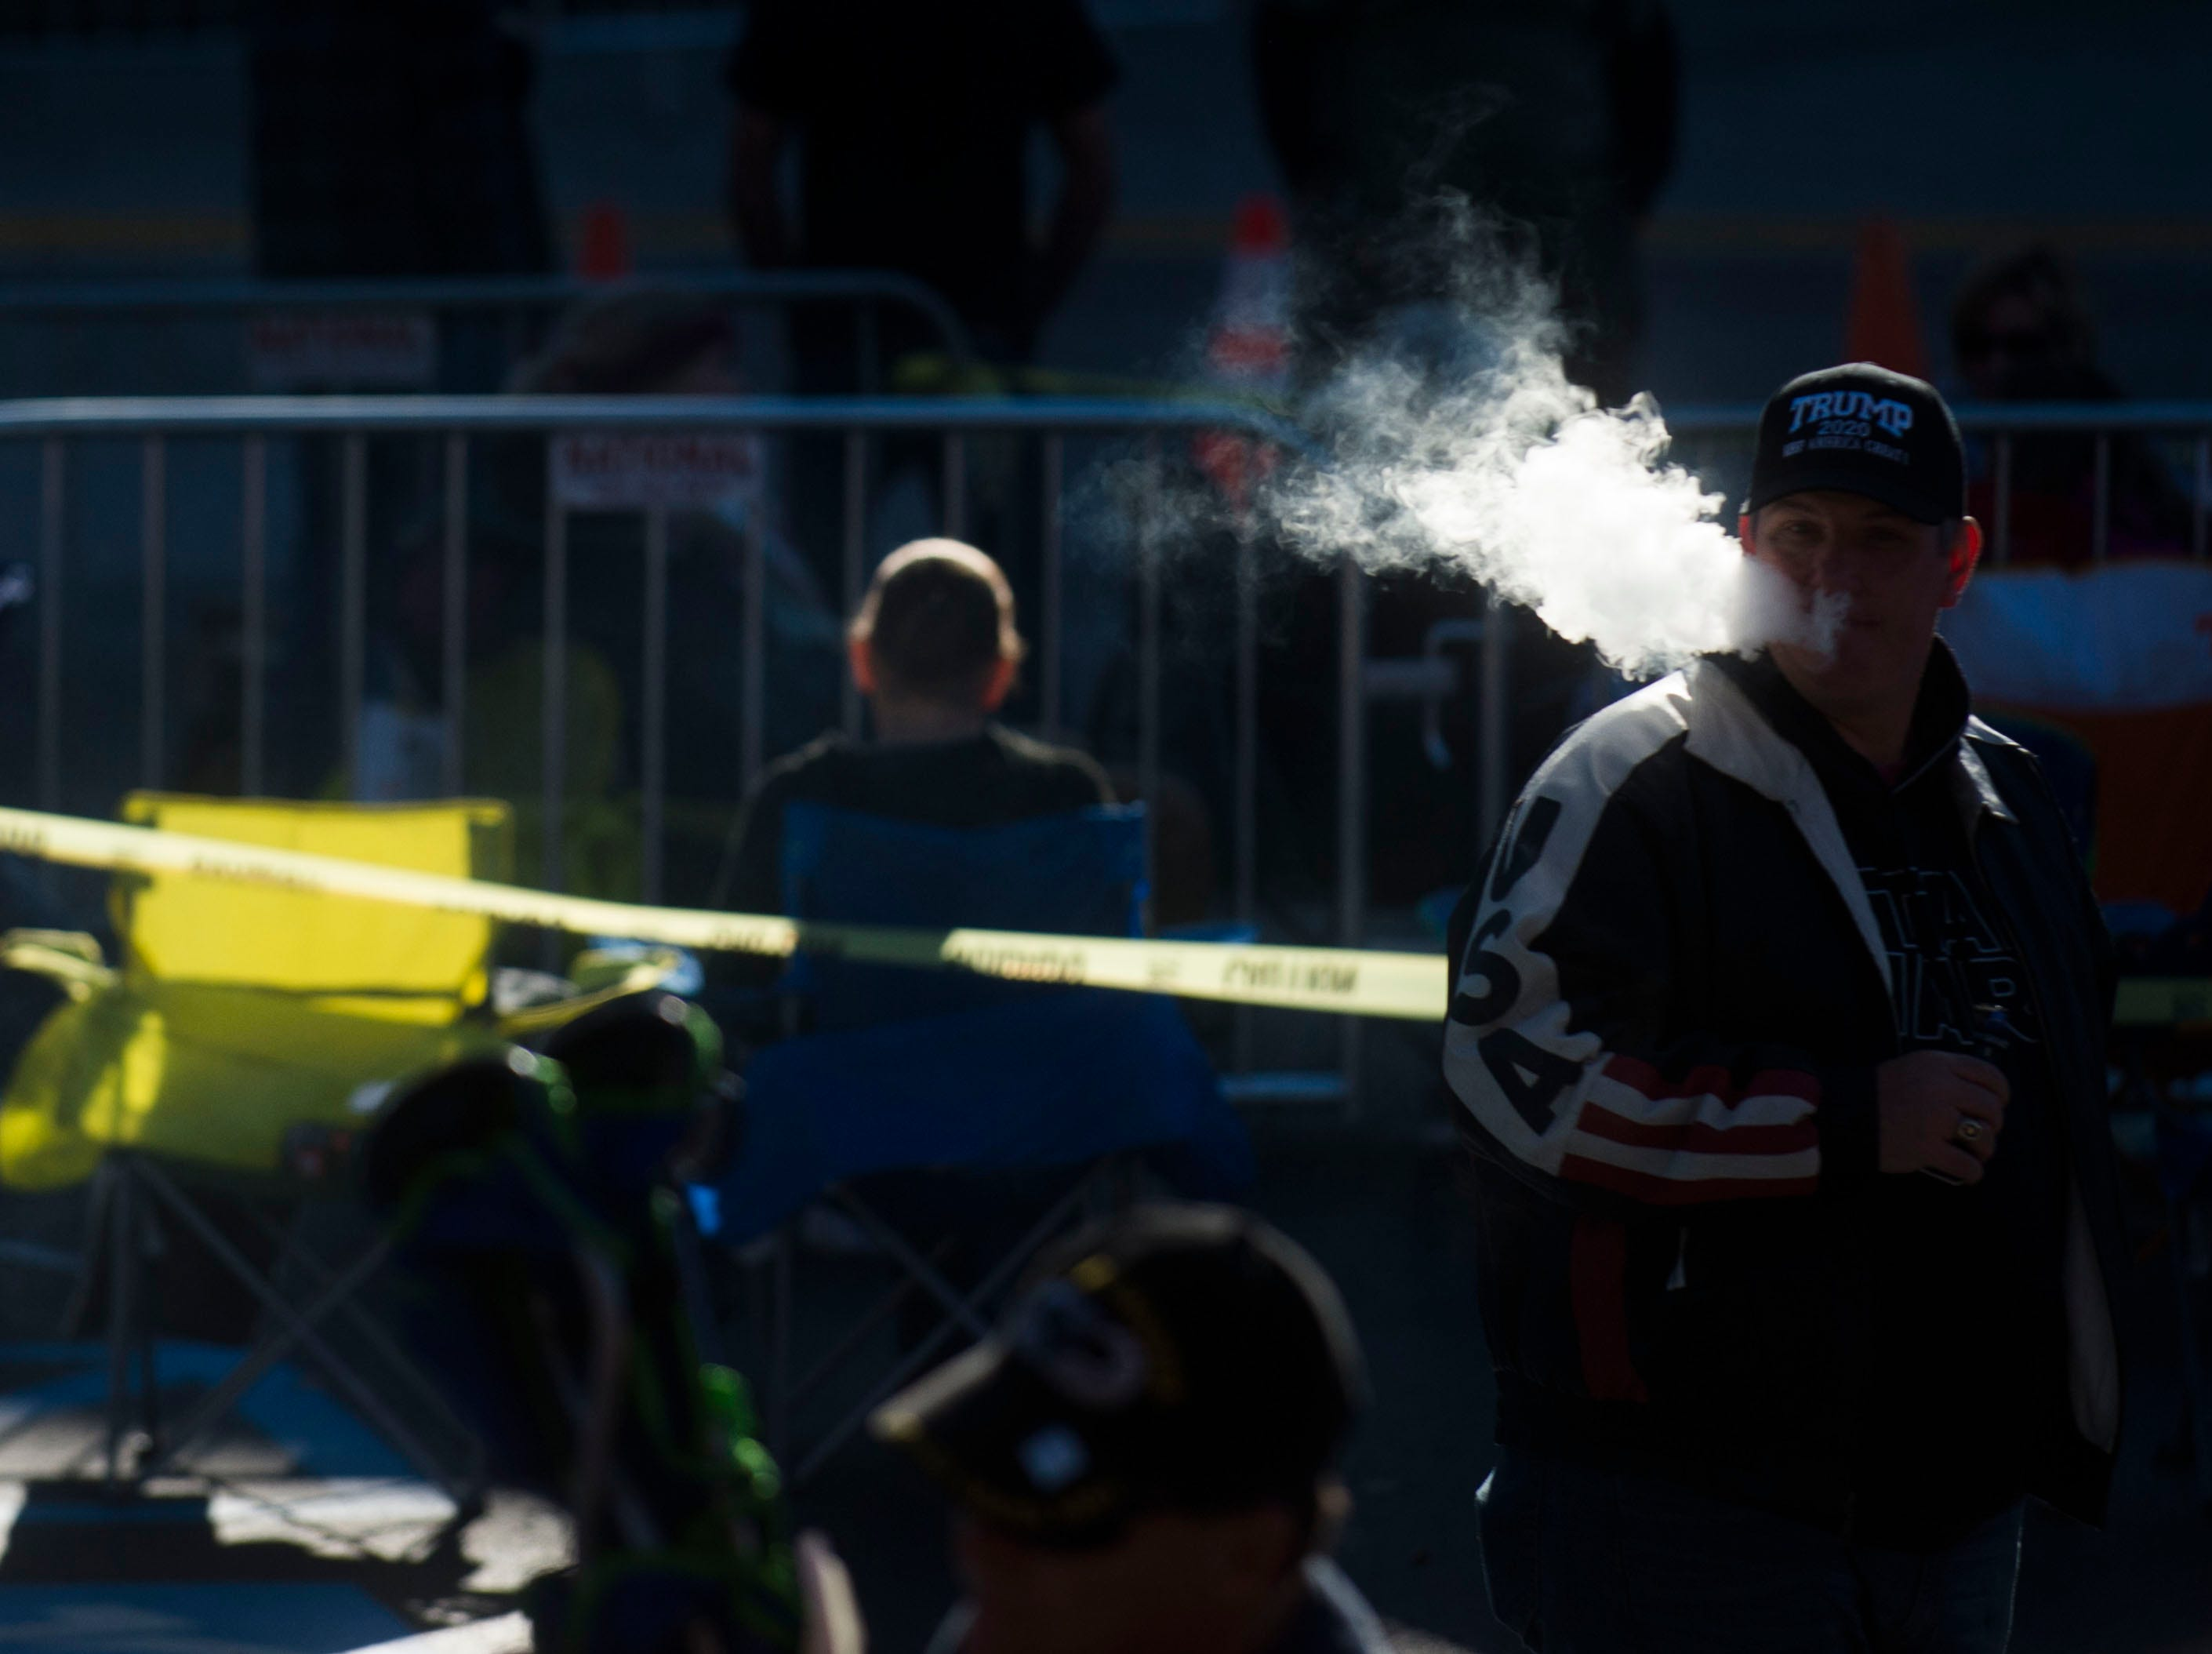 A trump supporter smokes while in line before a Donald Trump rally in support of U.S. Rep. Marsha Blackburn for the U.S. Senate at McKenzie Arena in Chattanooga, Sunday, Nov. 4, 2018.